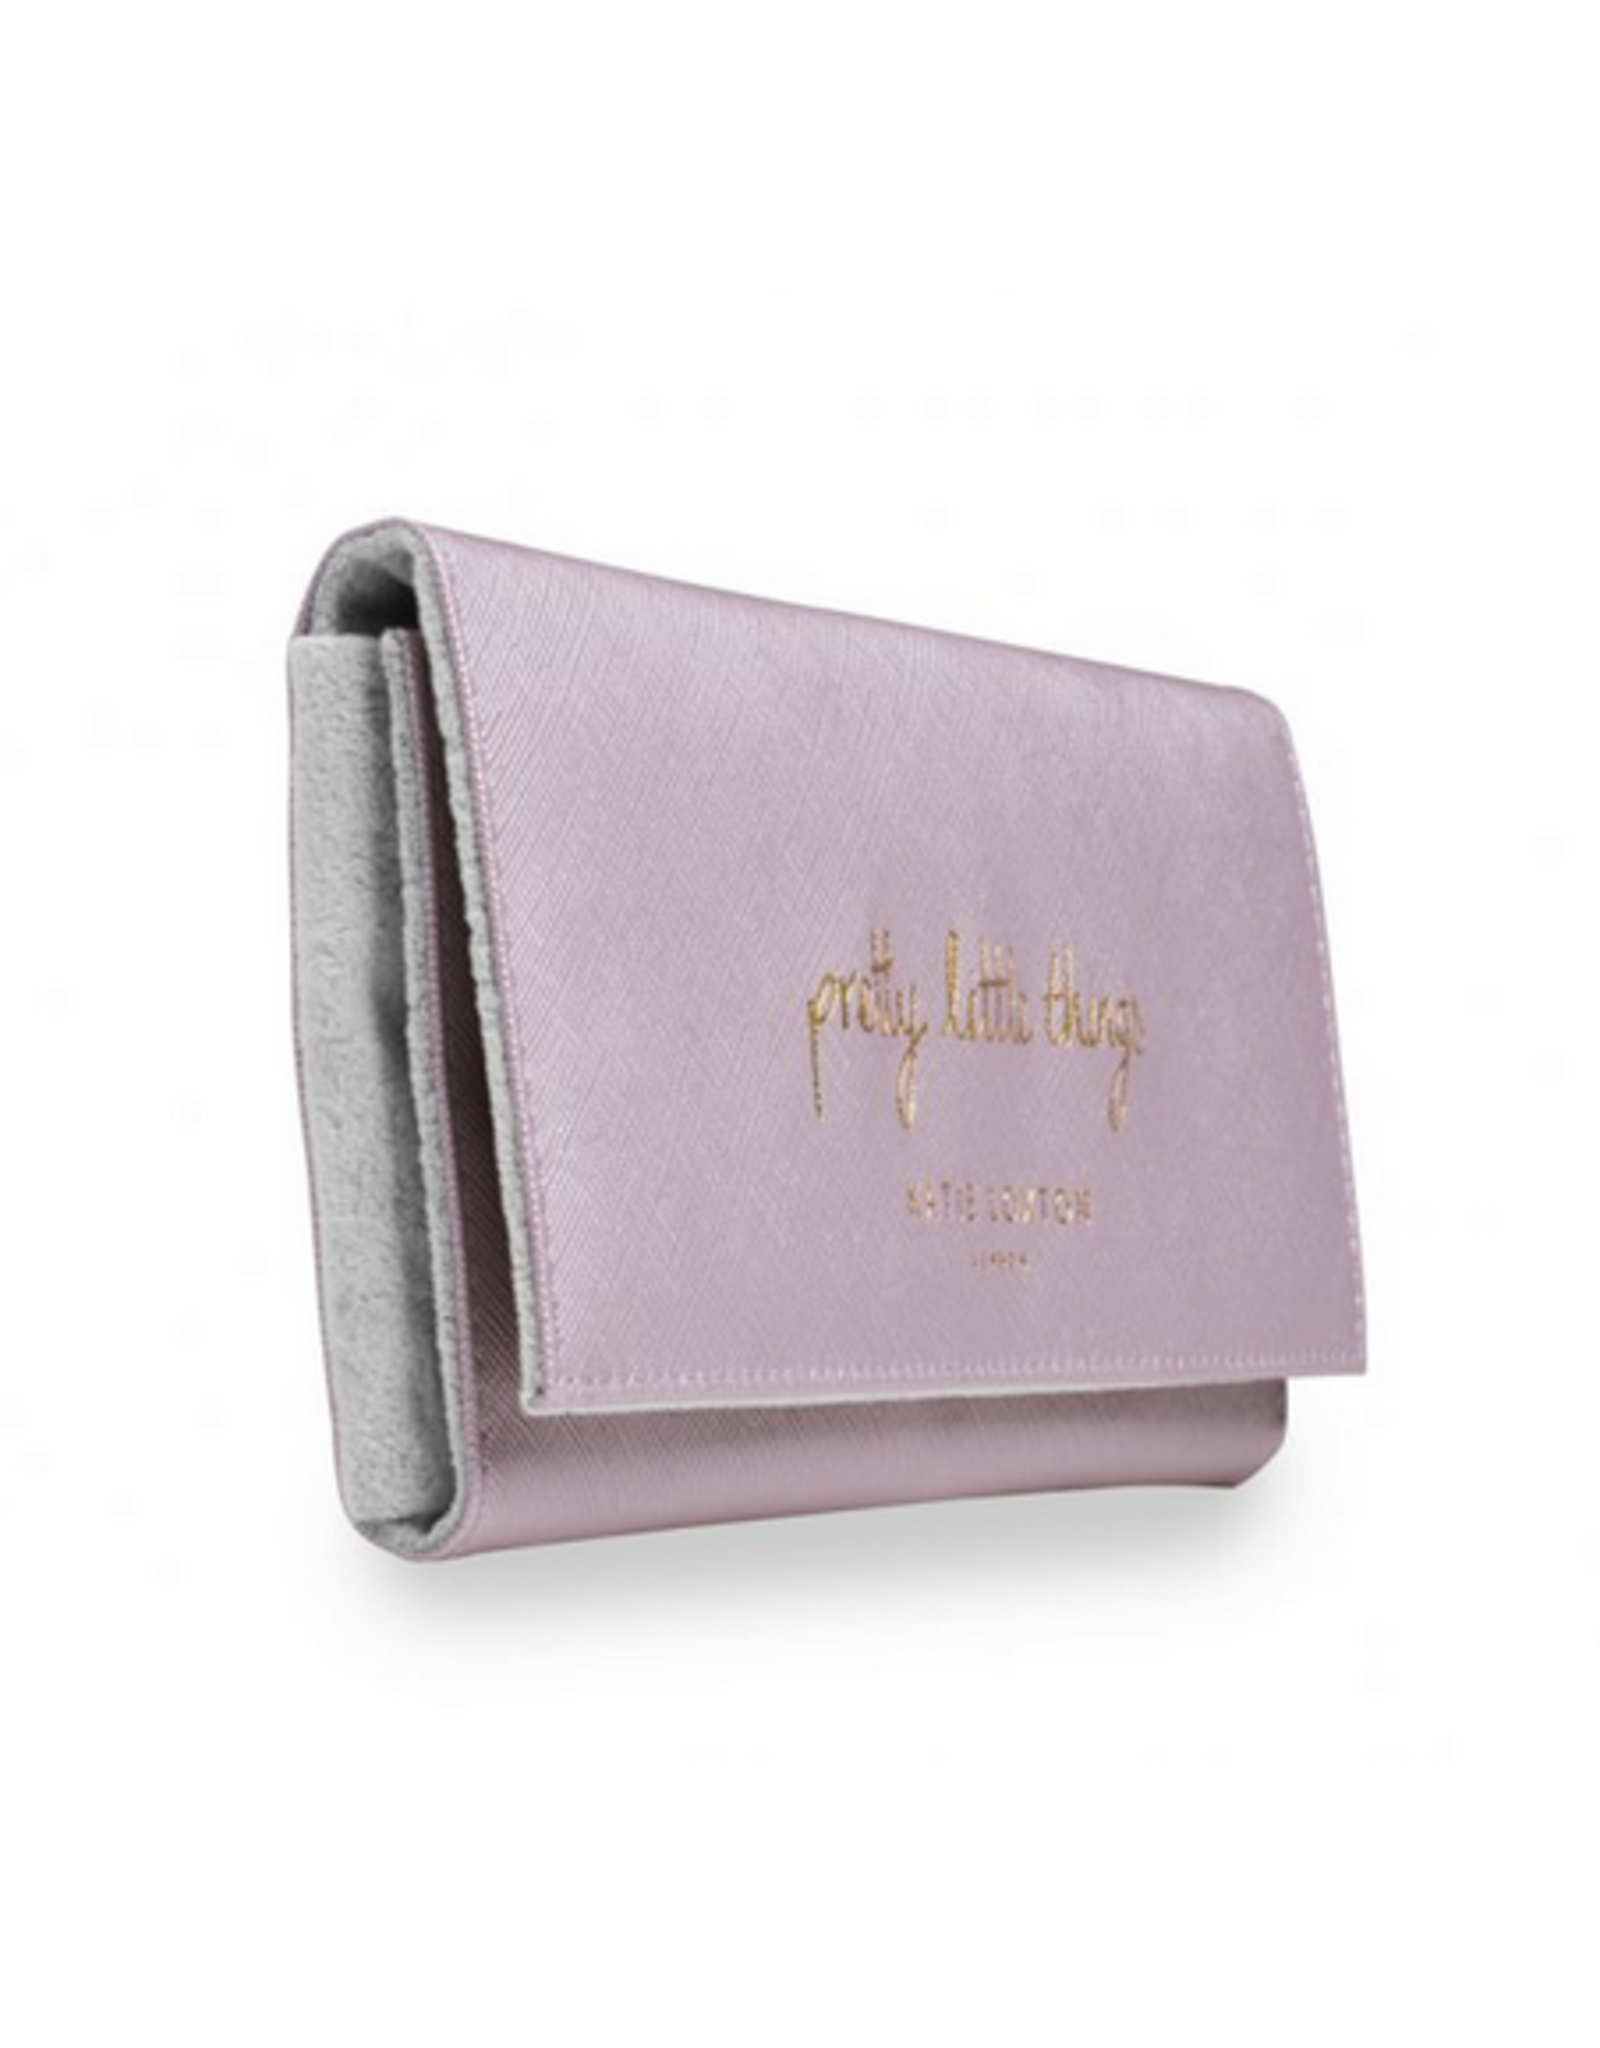 Katie Loxton Pretty Little Things Jewelry Roll in Metallic Pink